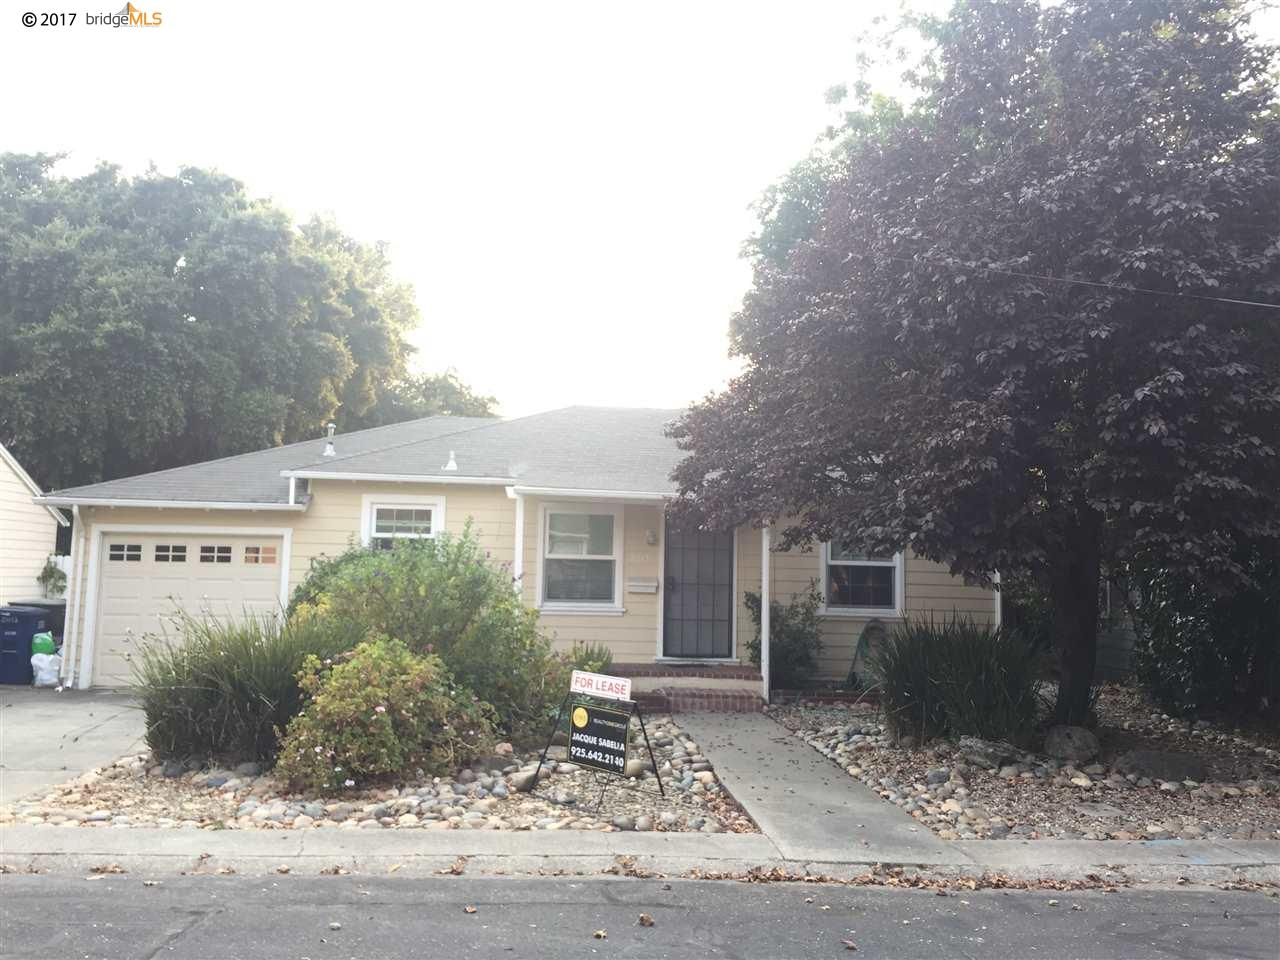 Single Family Home for Rent at 2013 BEACH Street 2013 BEACH Street Concord, California 94519 United States